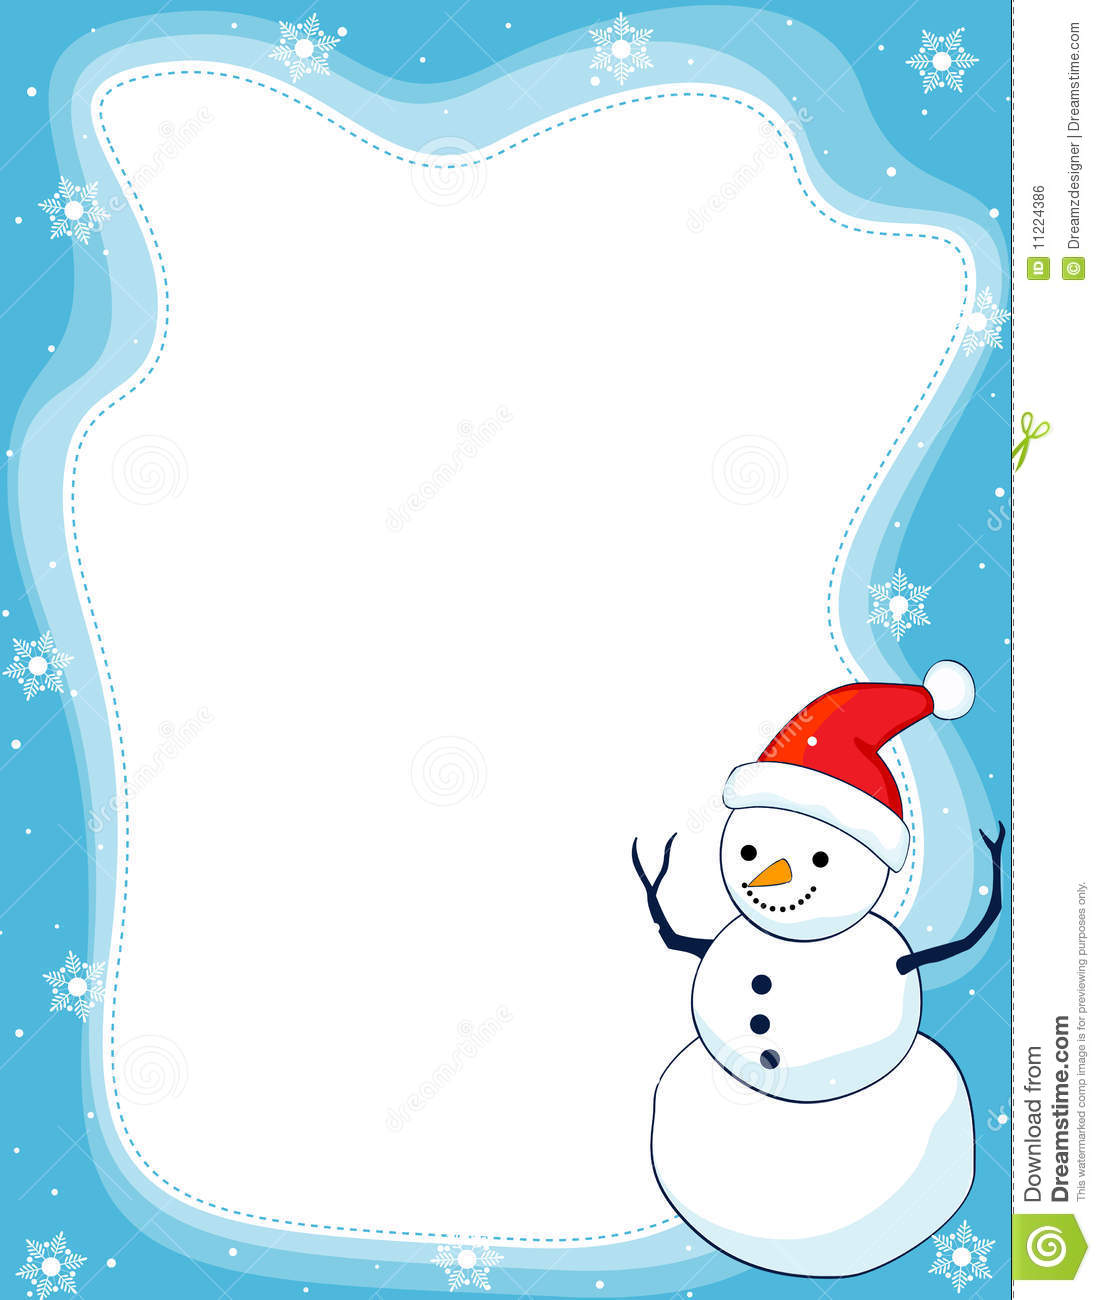 border illustration featuring a smiling snowman with falling snow on ...